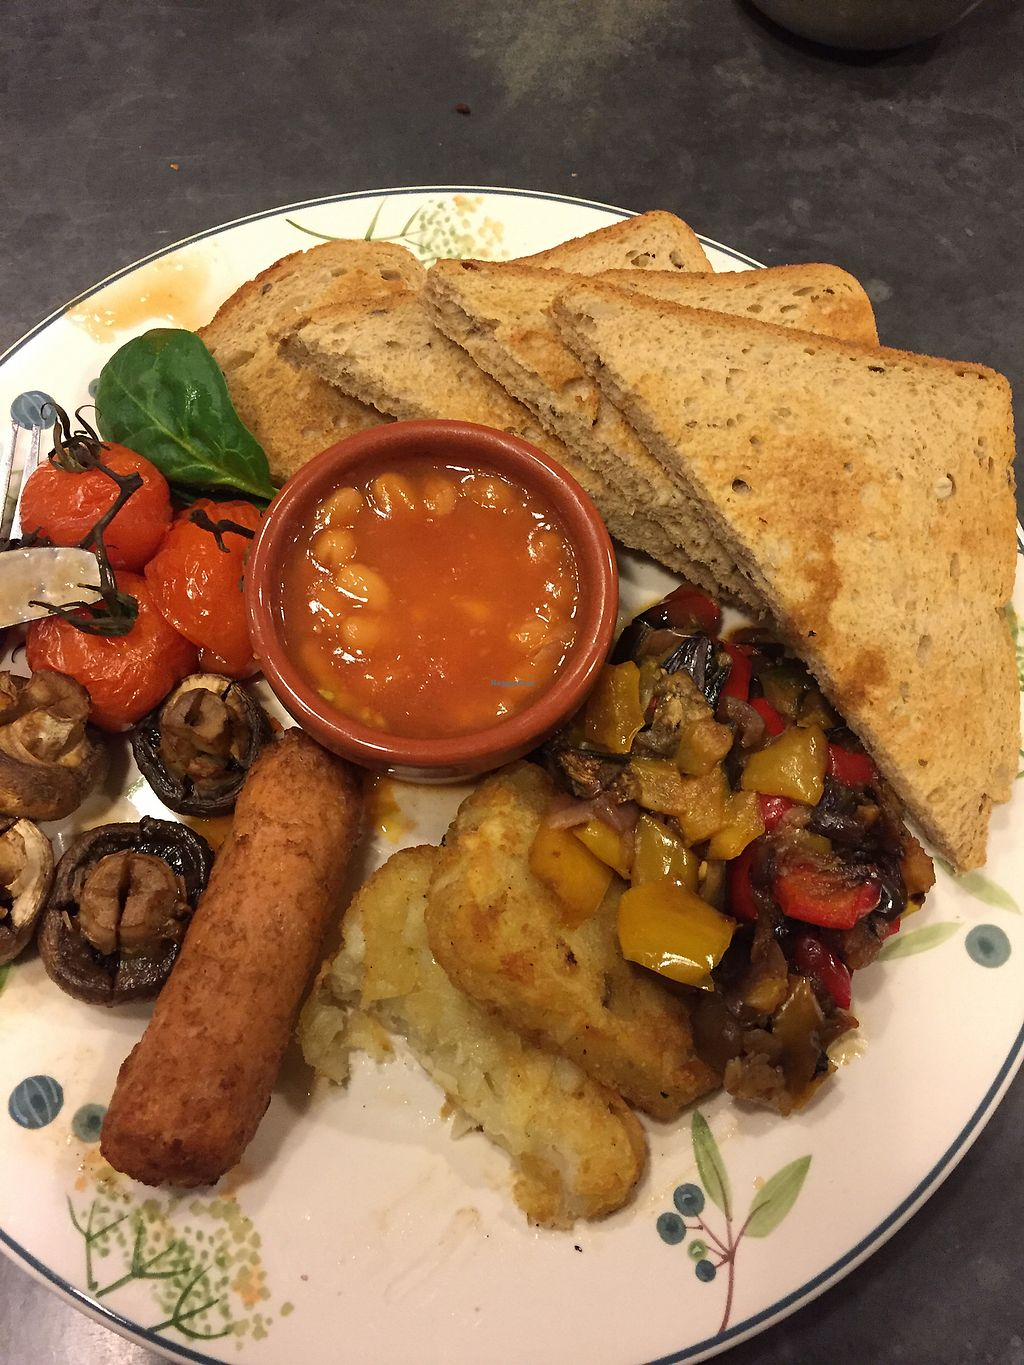 """Photo of Fox Cafe  by <a href=""""/members/profile/TraceyNorris"""">TraceyNorris</a> <br/>All day vegan breakfast <br/> January 12, 2018  - <a href='/contact/abuse/image/69299/345889'>Report</a>"""